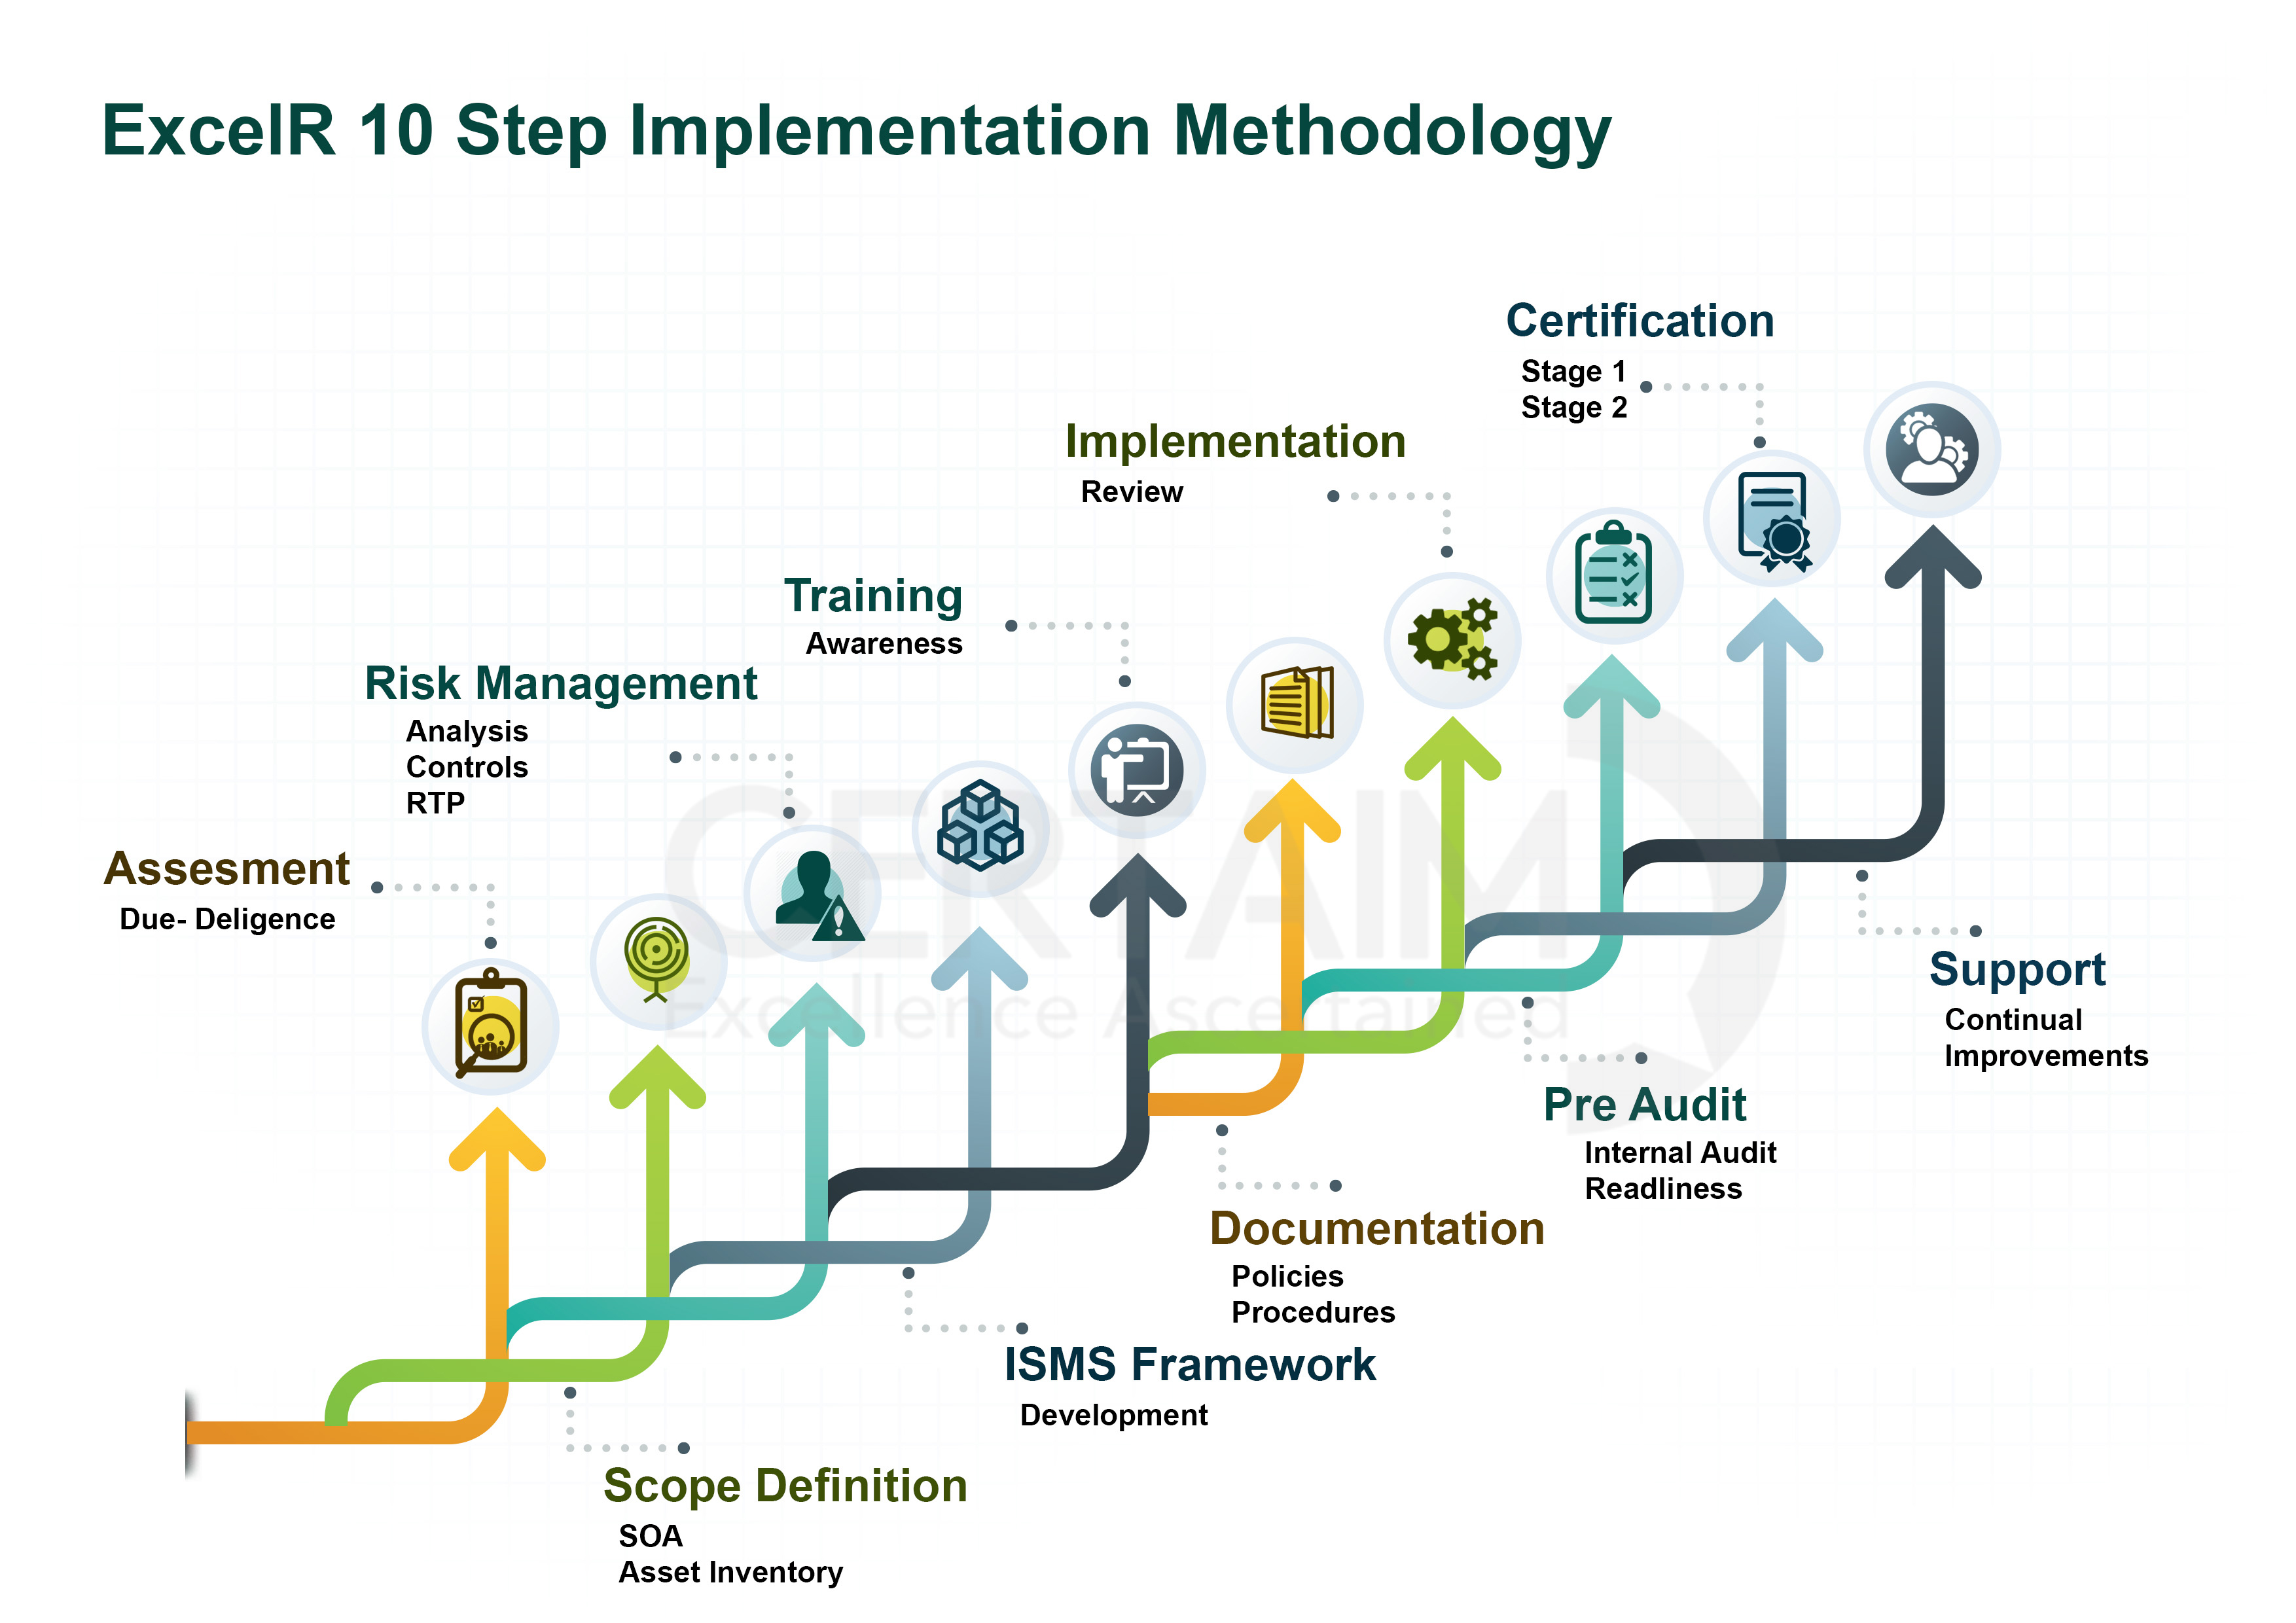 Iso 27001 policy framework for investment metropole maritime investments